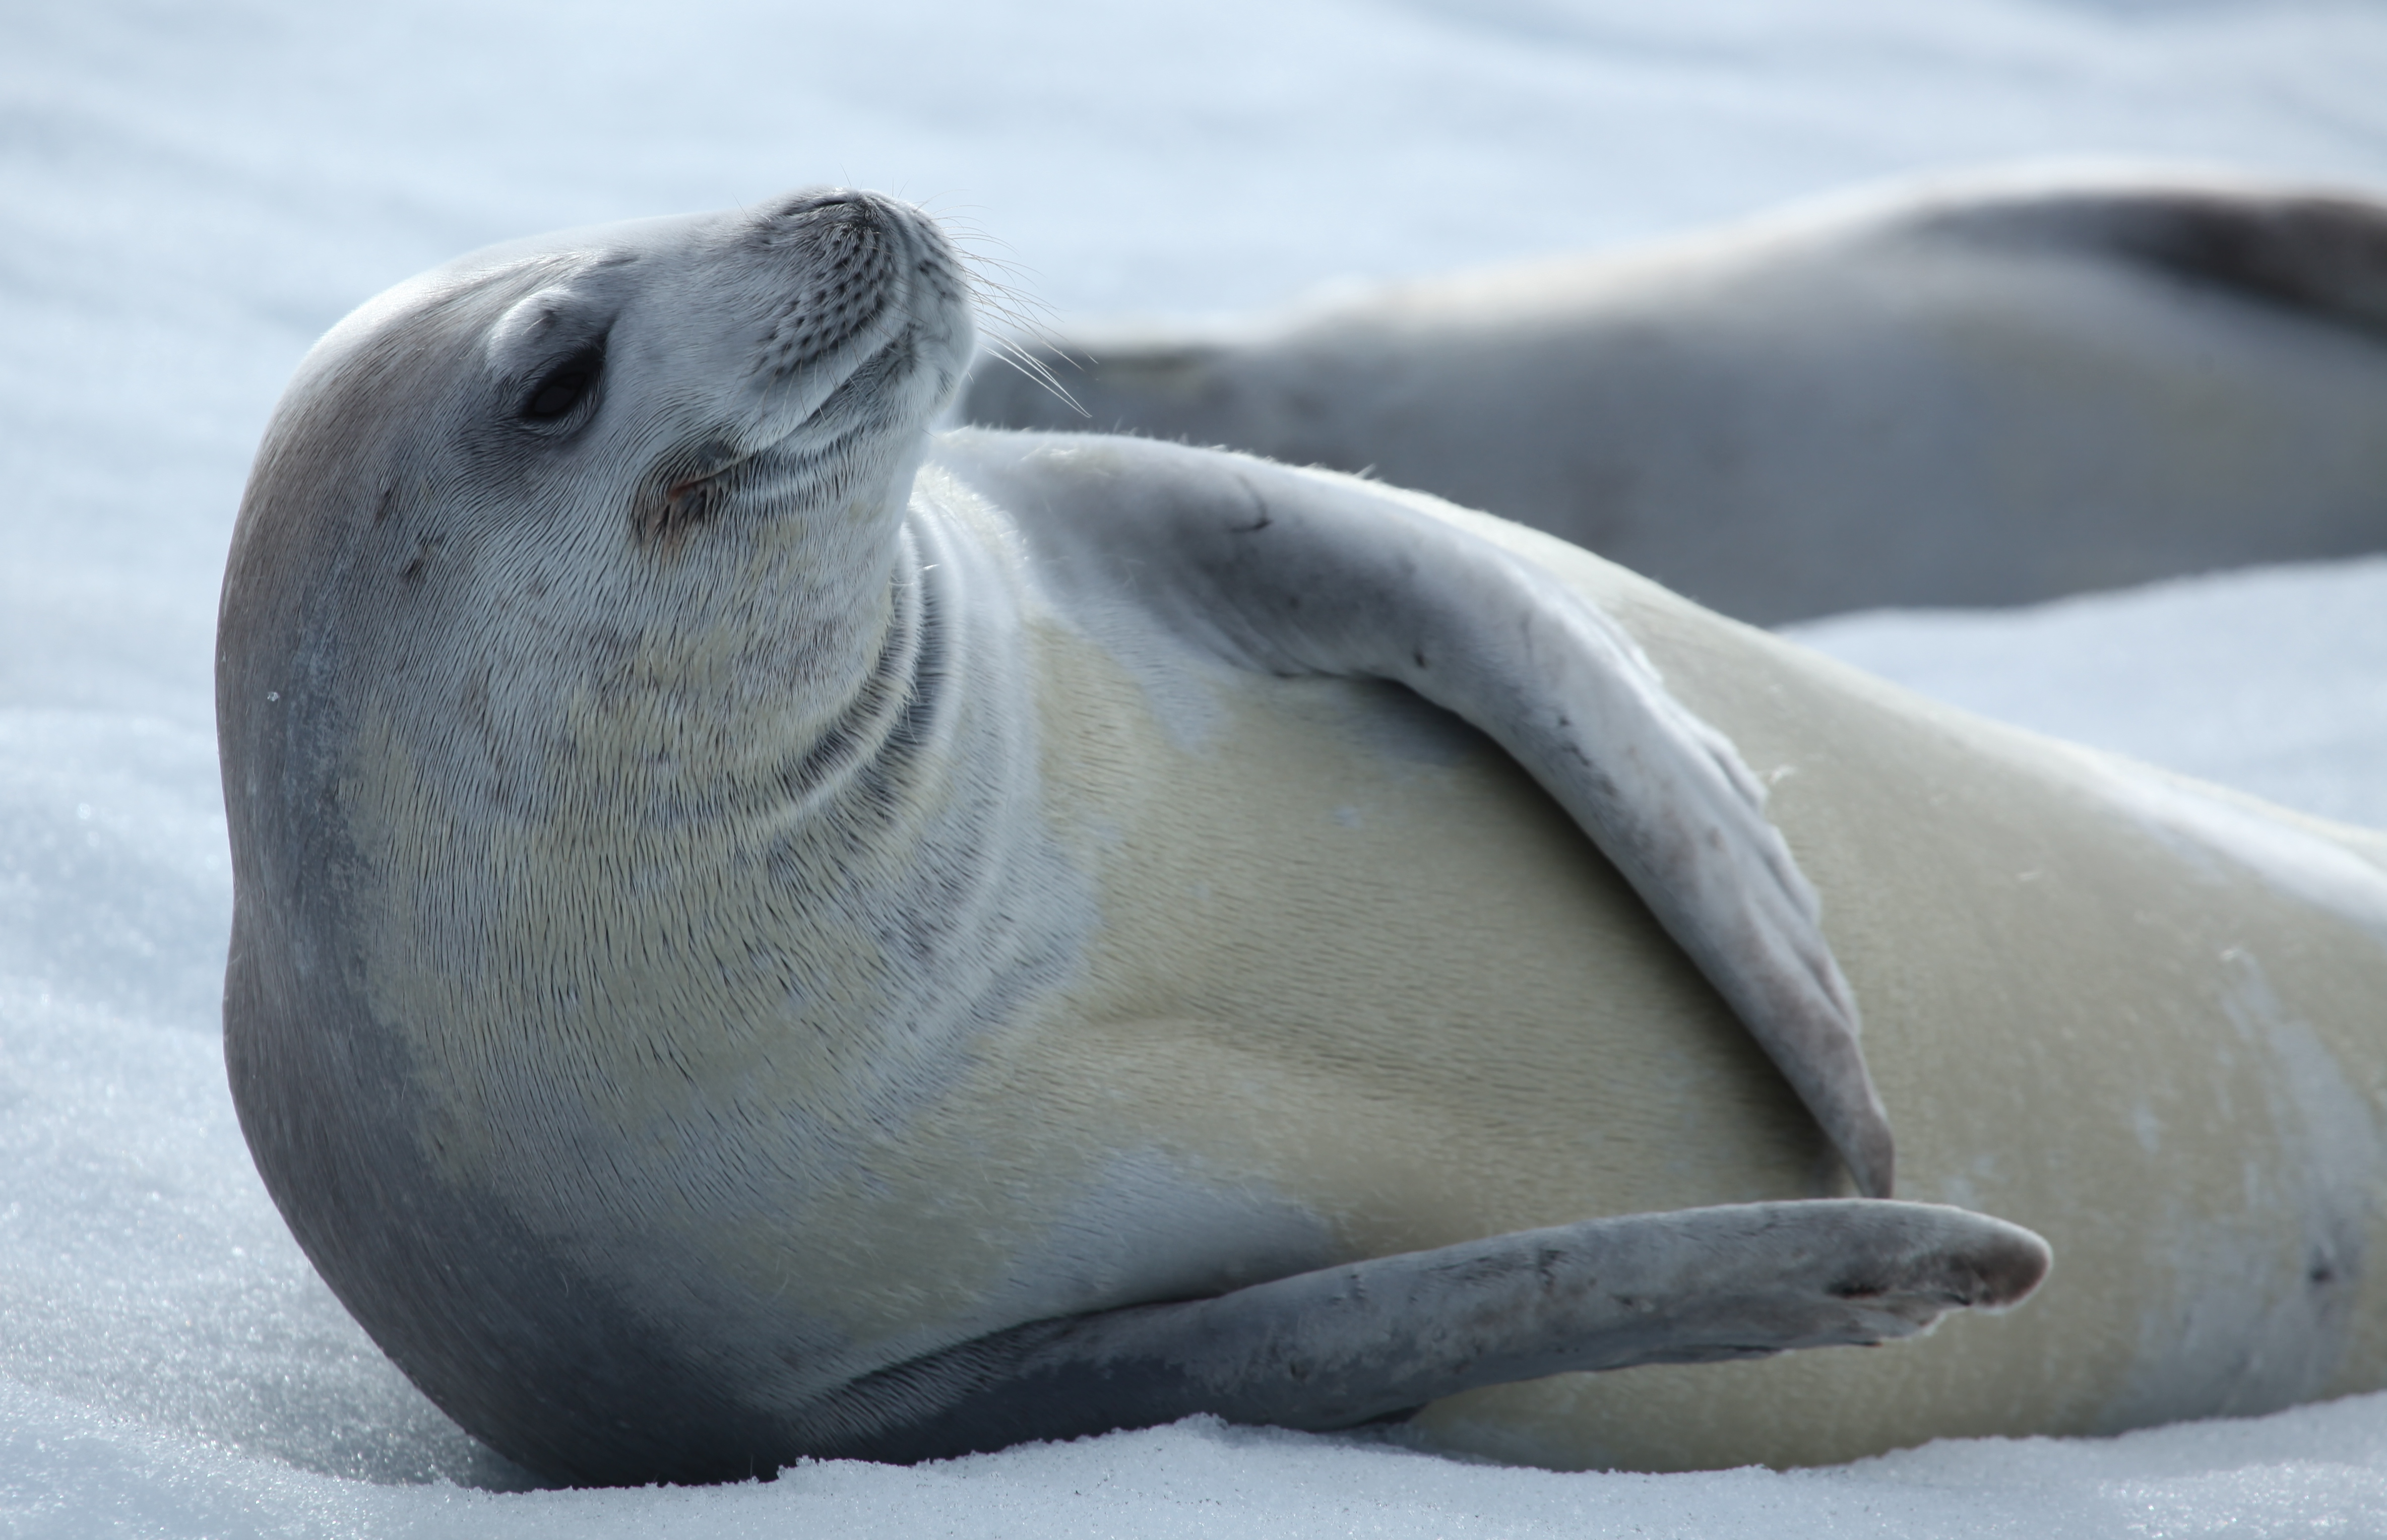 File:Crabeater Seal in Pléneau Bay, Antarctica.jpg - Wikimedia Commons